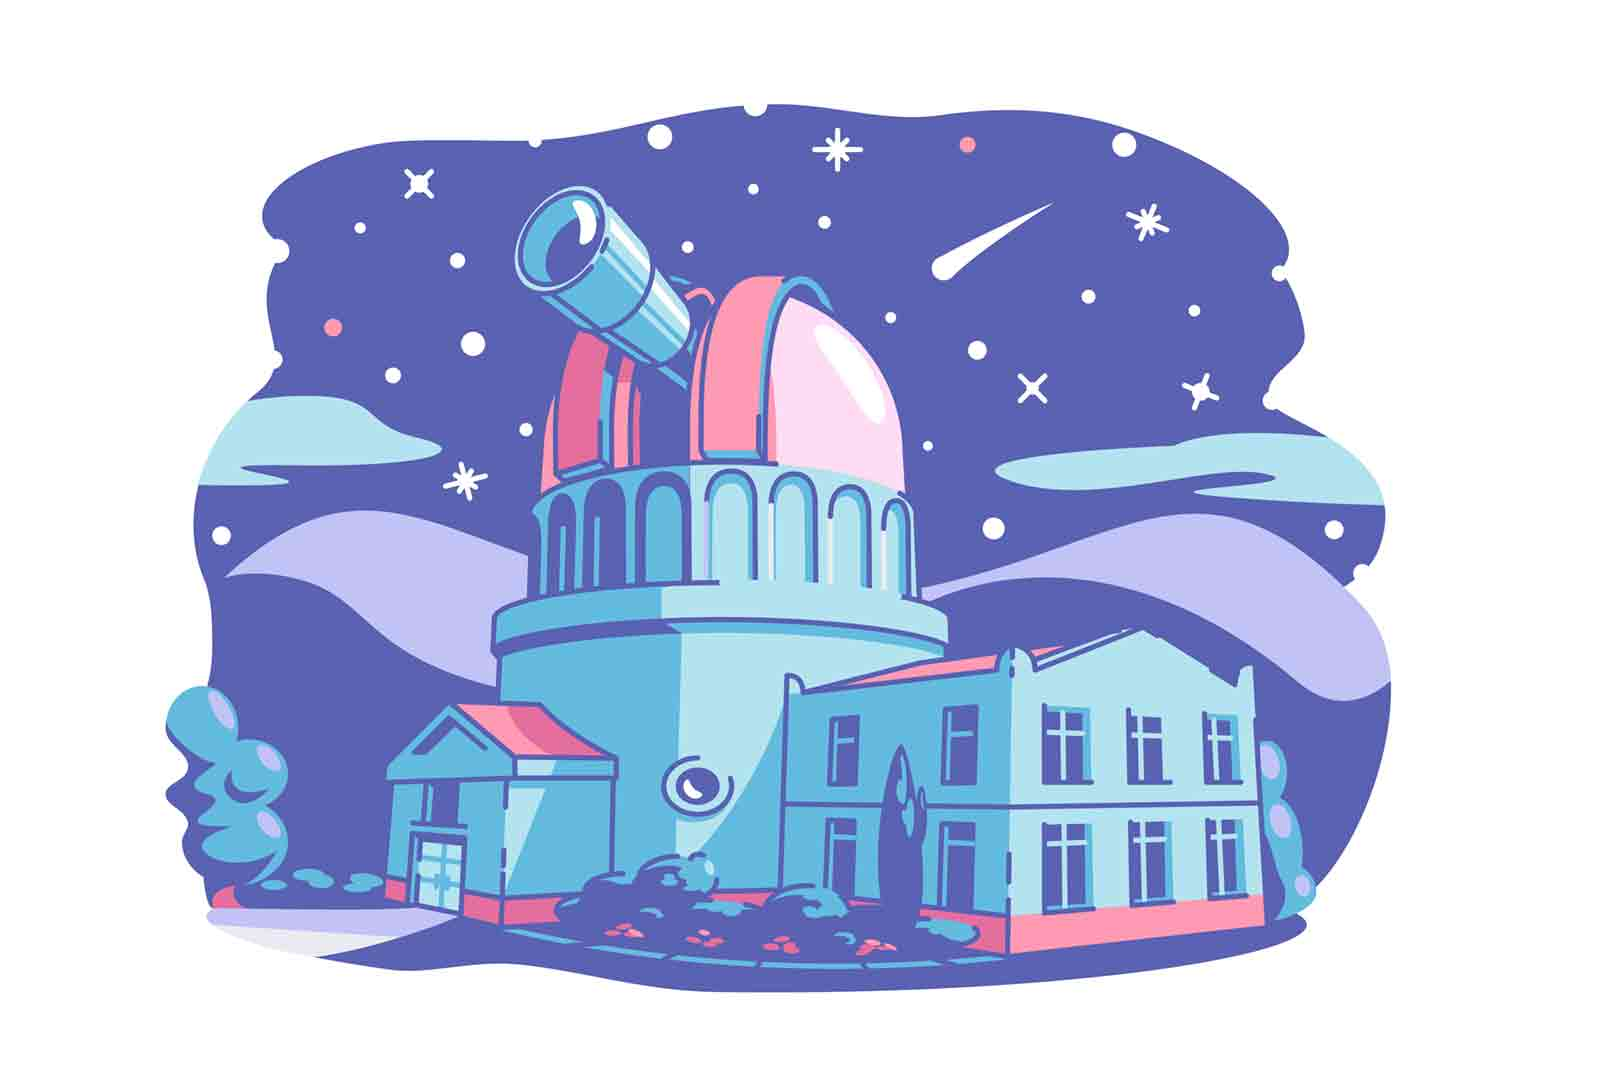 Observatory building with telescope vector illustration. Stars, planets, comet, asteroid on night sky flat style. Science and astronomy.